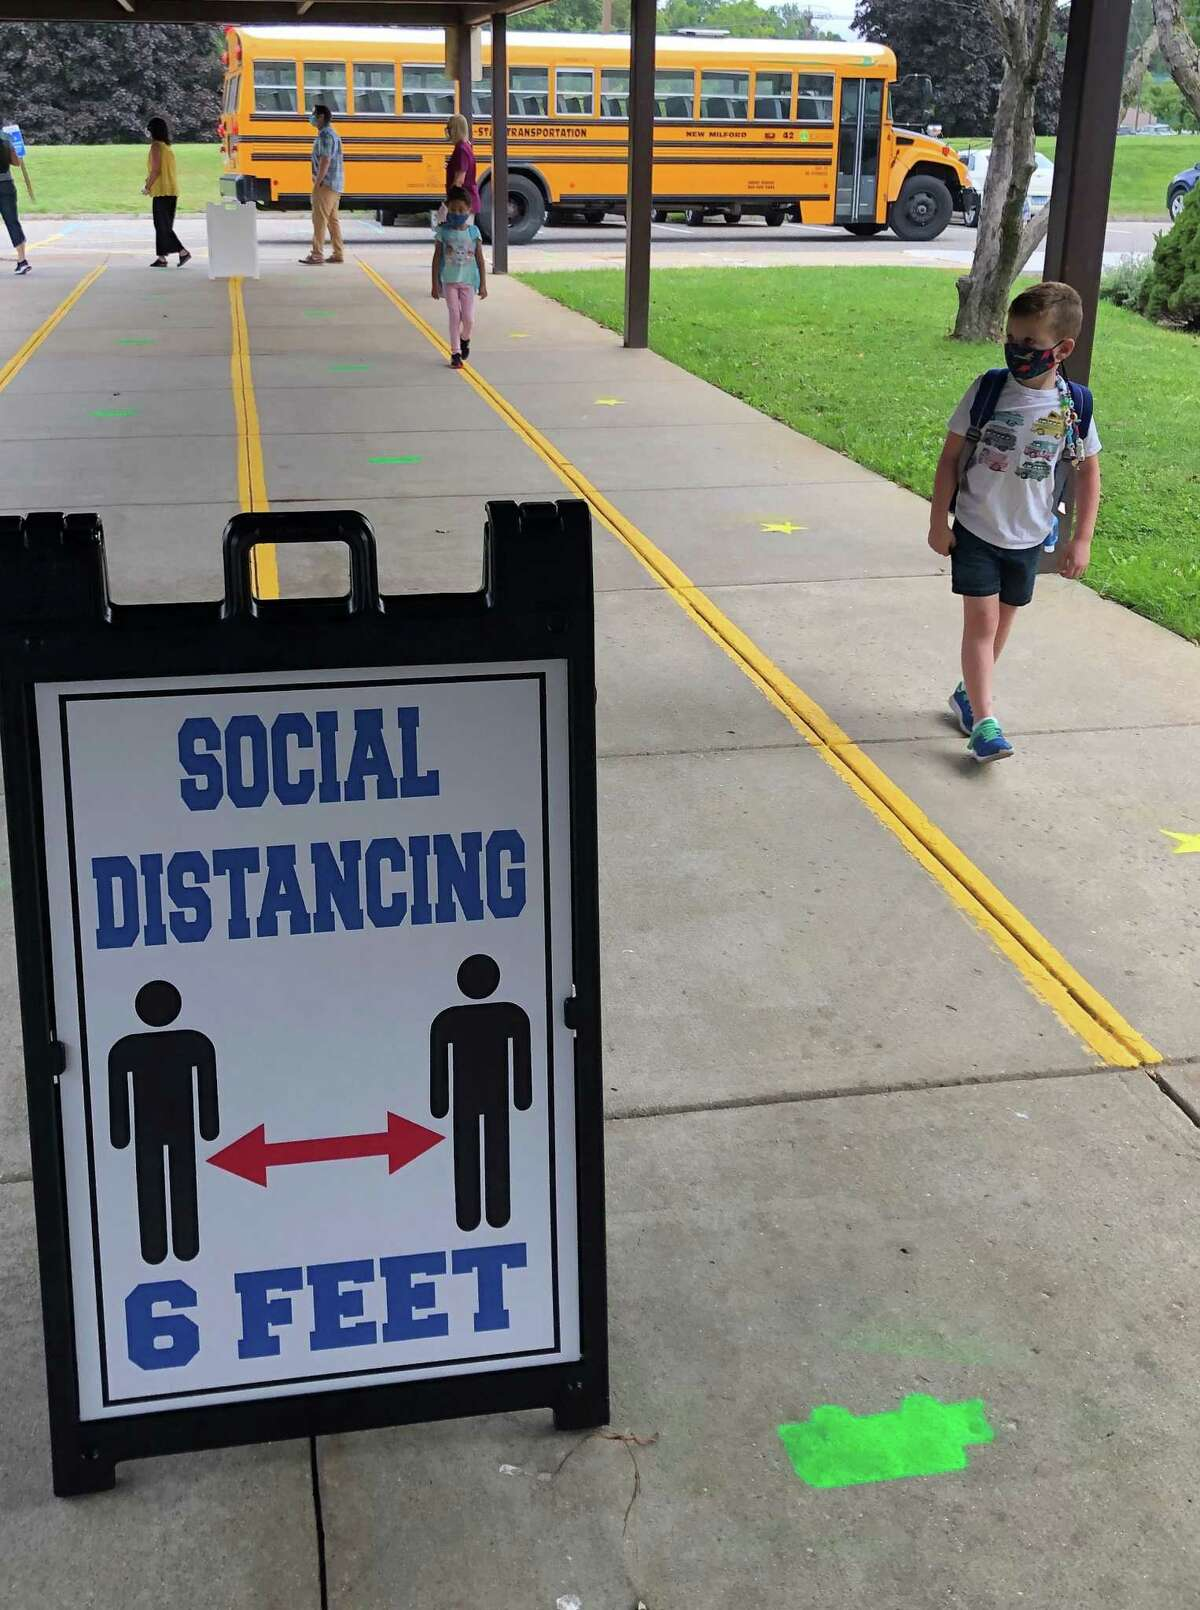 Above, John MacDonald, a second grader, follows the marked sidewalk for his first day at Northville Elementary School on Sept. 8, 2020. The school year will start on time this Wednesday.